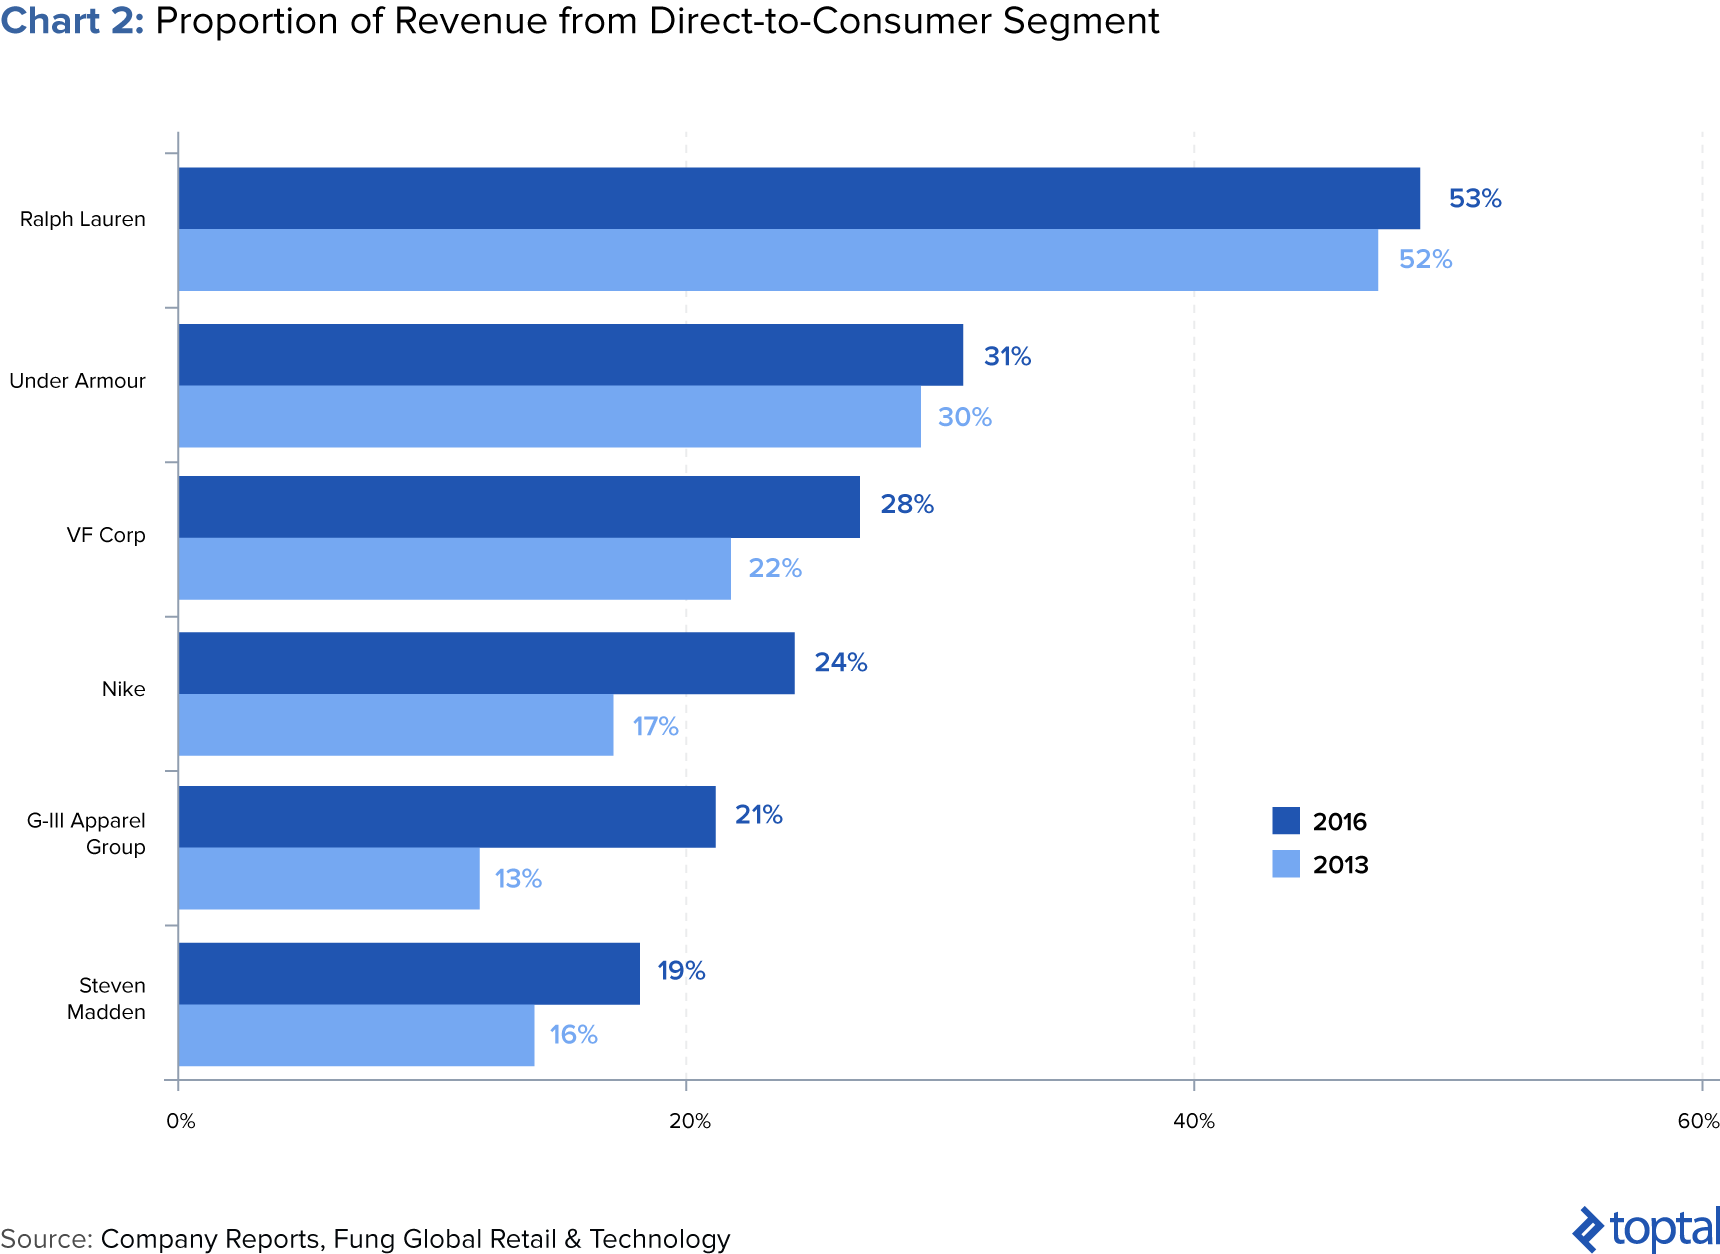 Chart 2: Proportion of Revenue from Direct-to-Consumer Segment